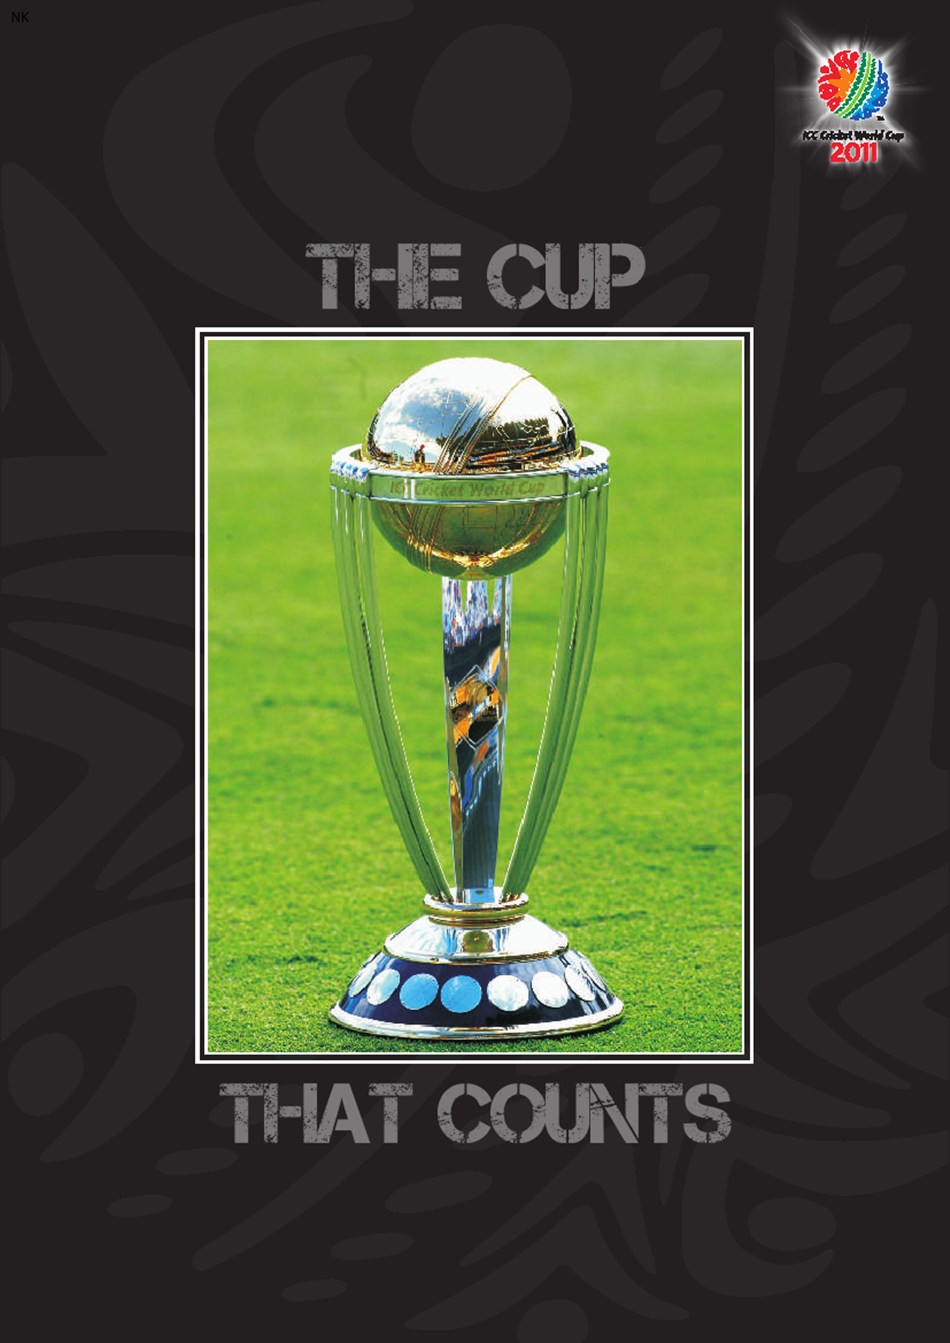 I need an essay on cricket world cup 2011 of 100-120 words! please help me!?